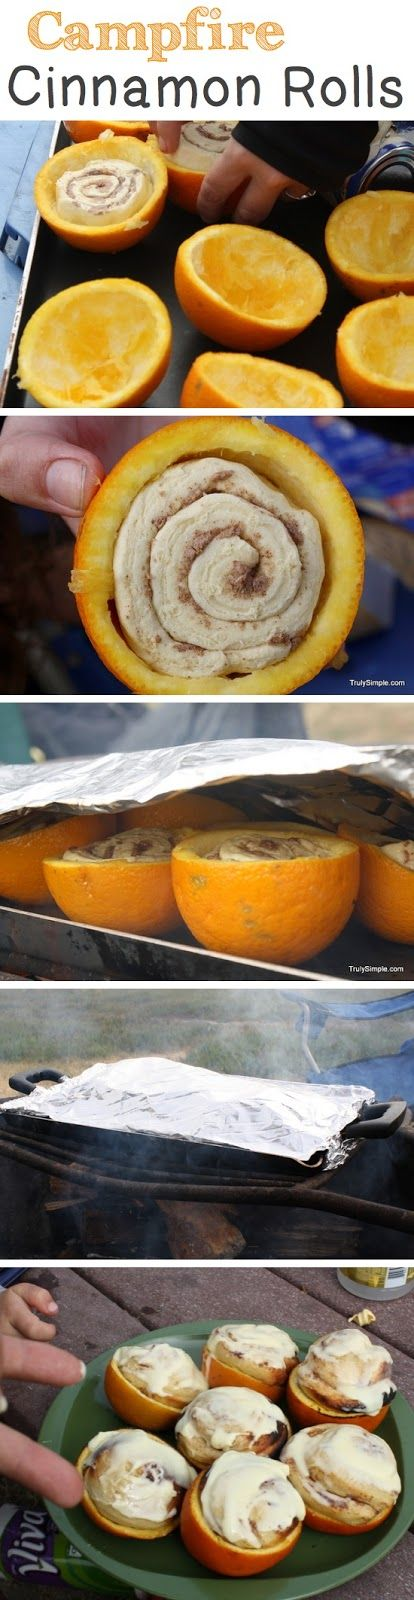 Campfire Cinnamon Rolls | Recipe Sharing Community